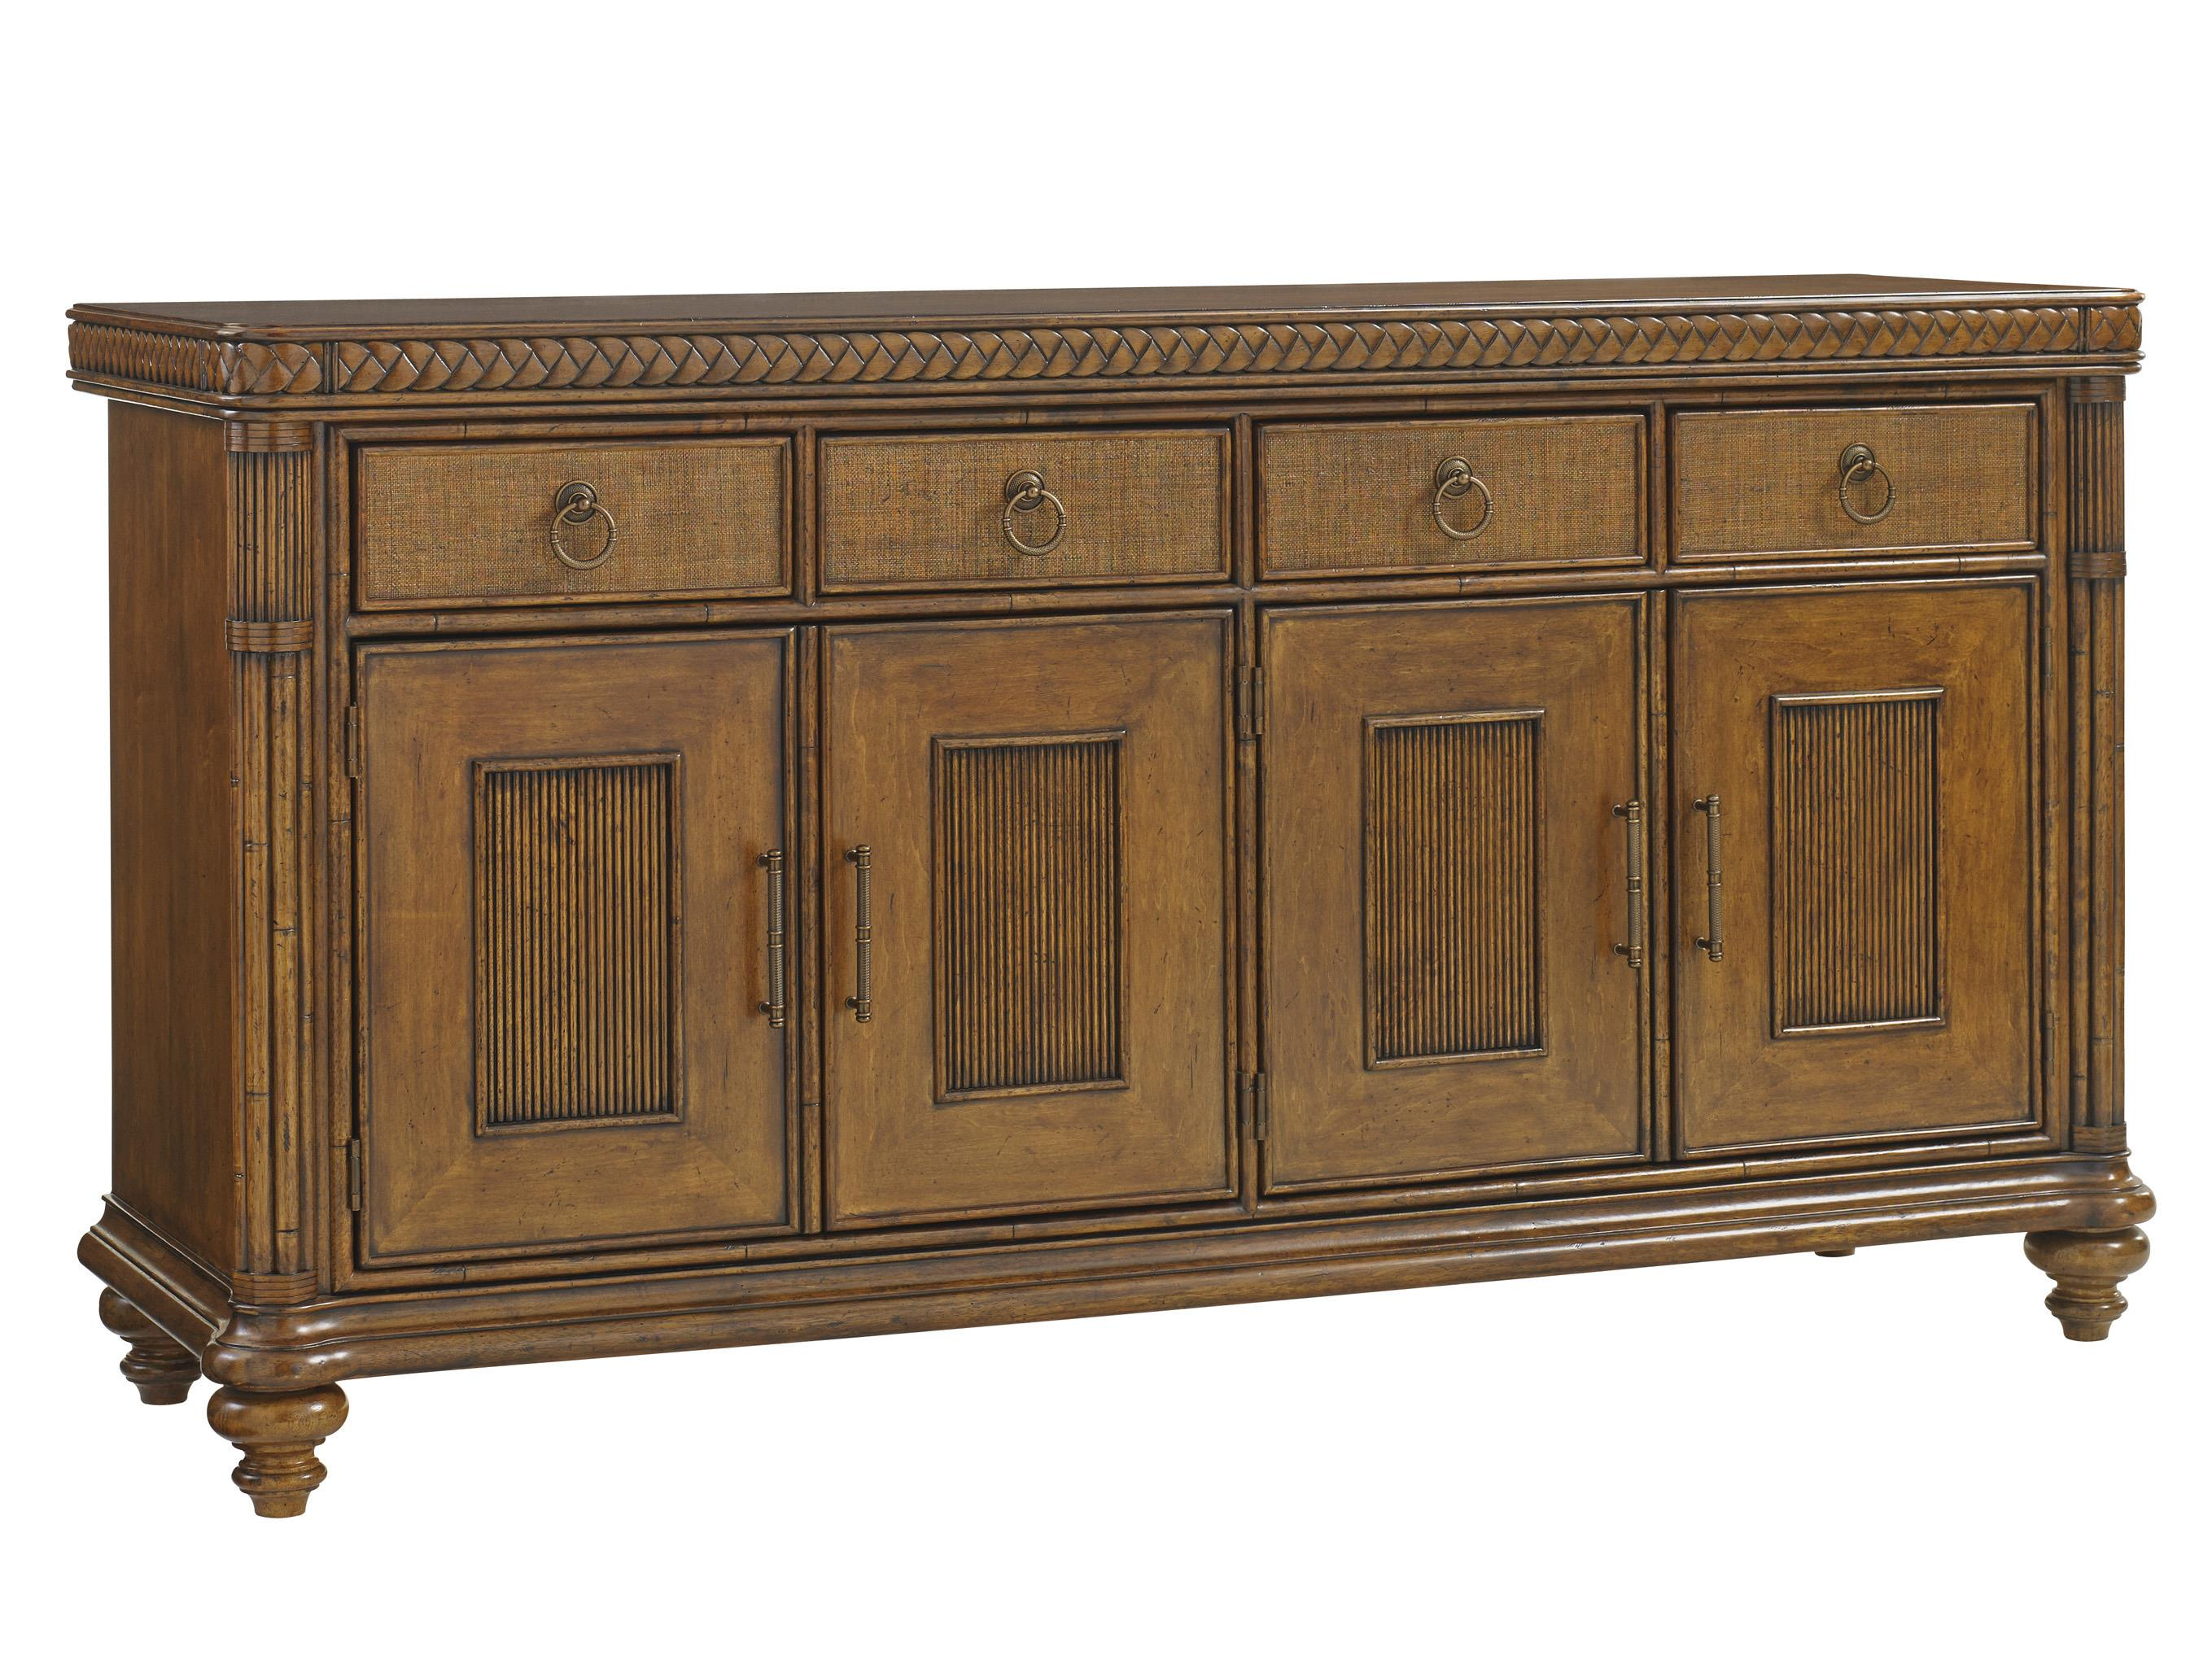 Bali Hai Trident Buffet by Tommy Bahama Home at Baer's Furniture